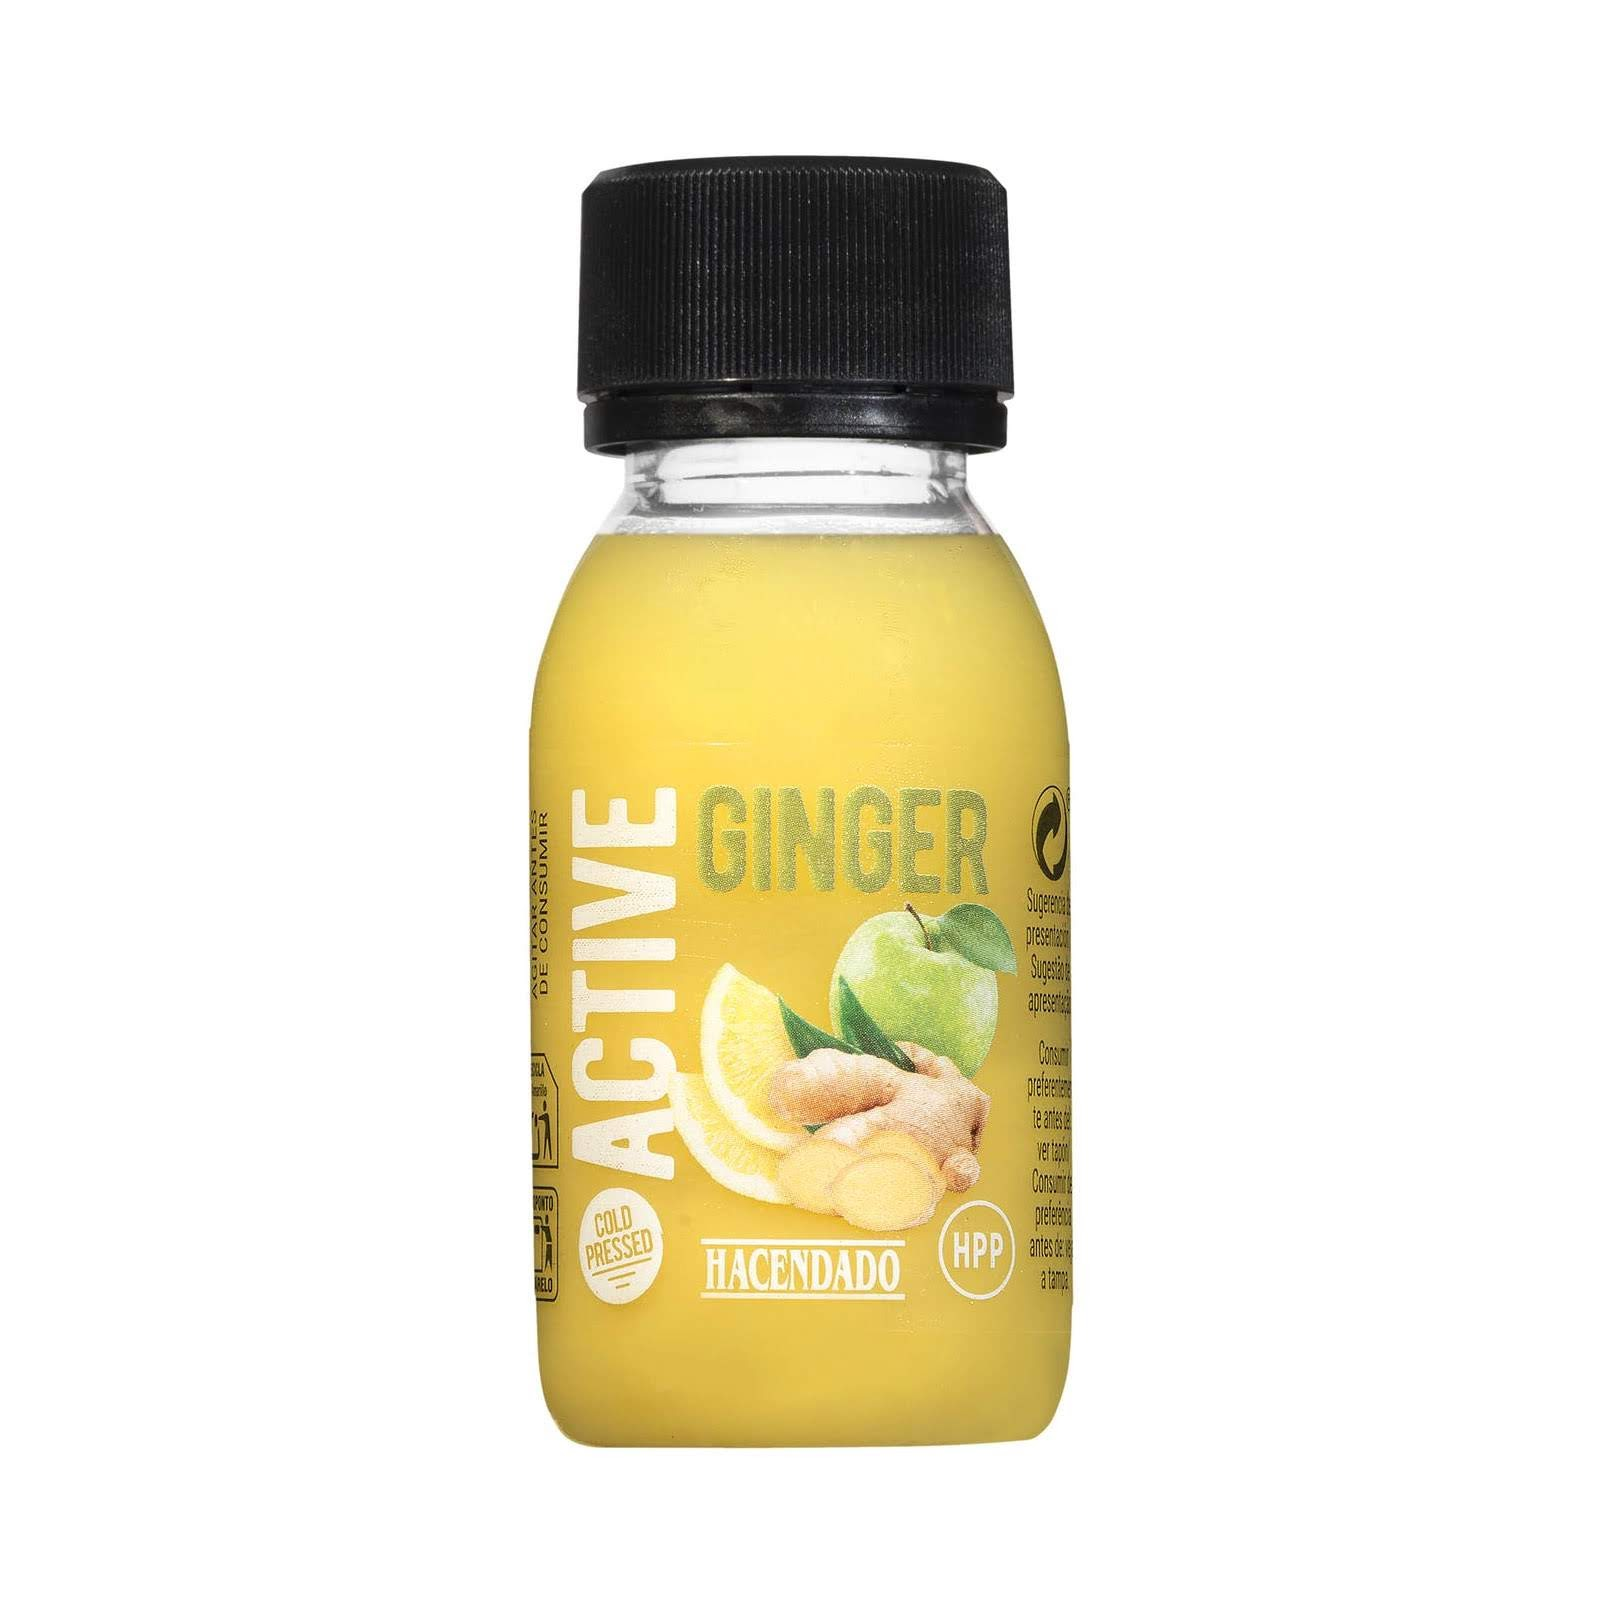 Shot active ginger Hacendado